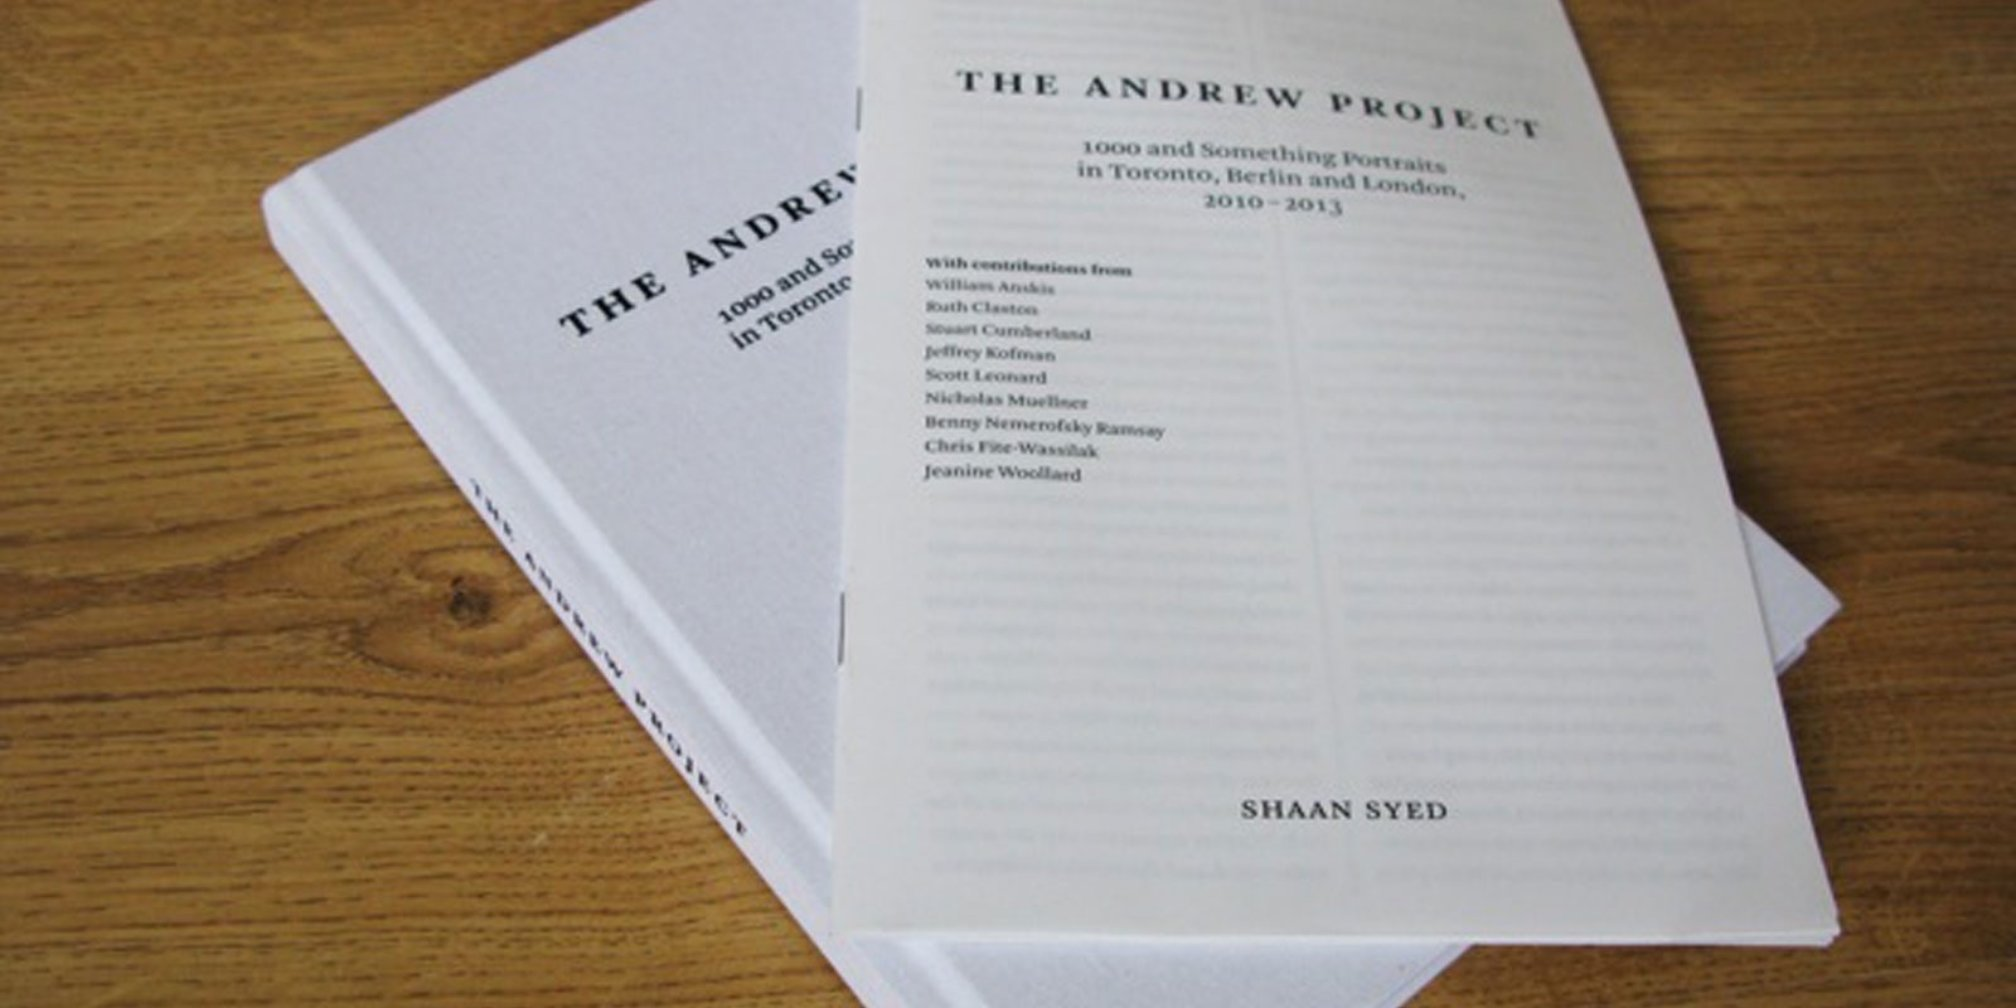 The Andrew Project, 2013